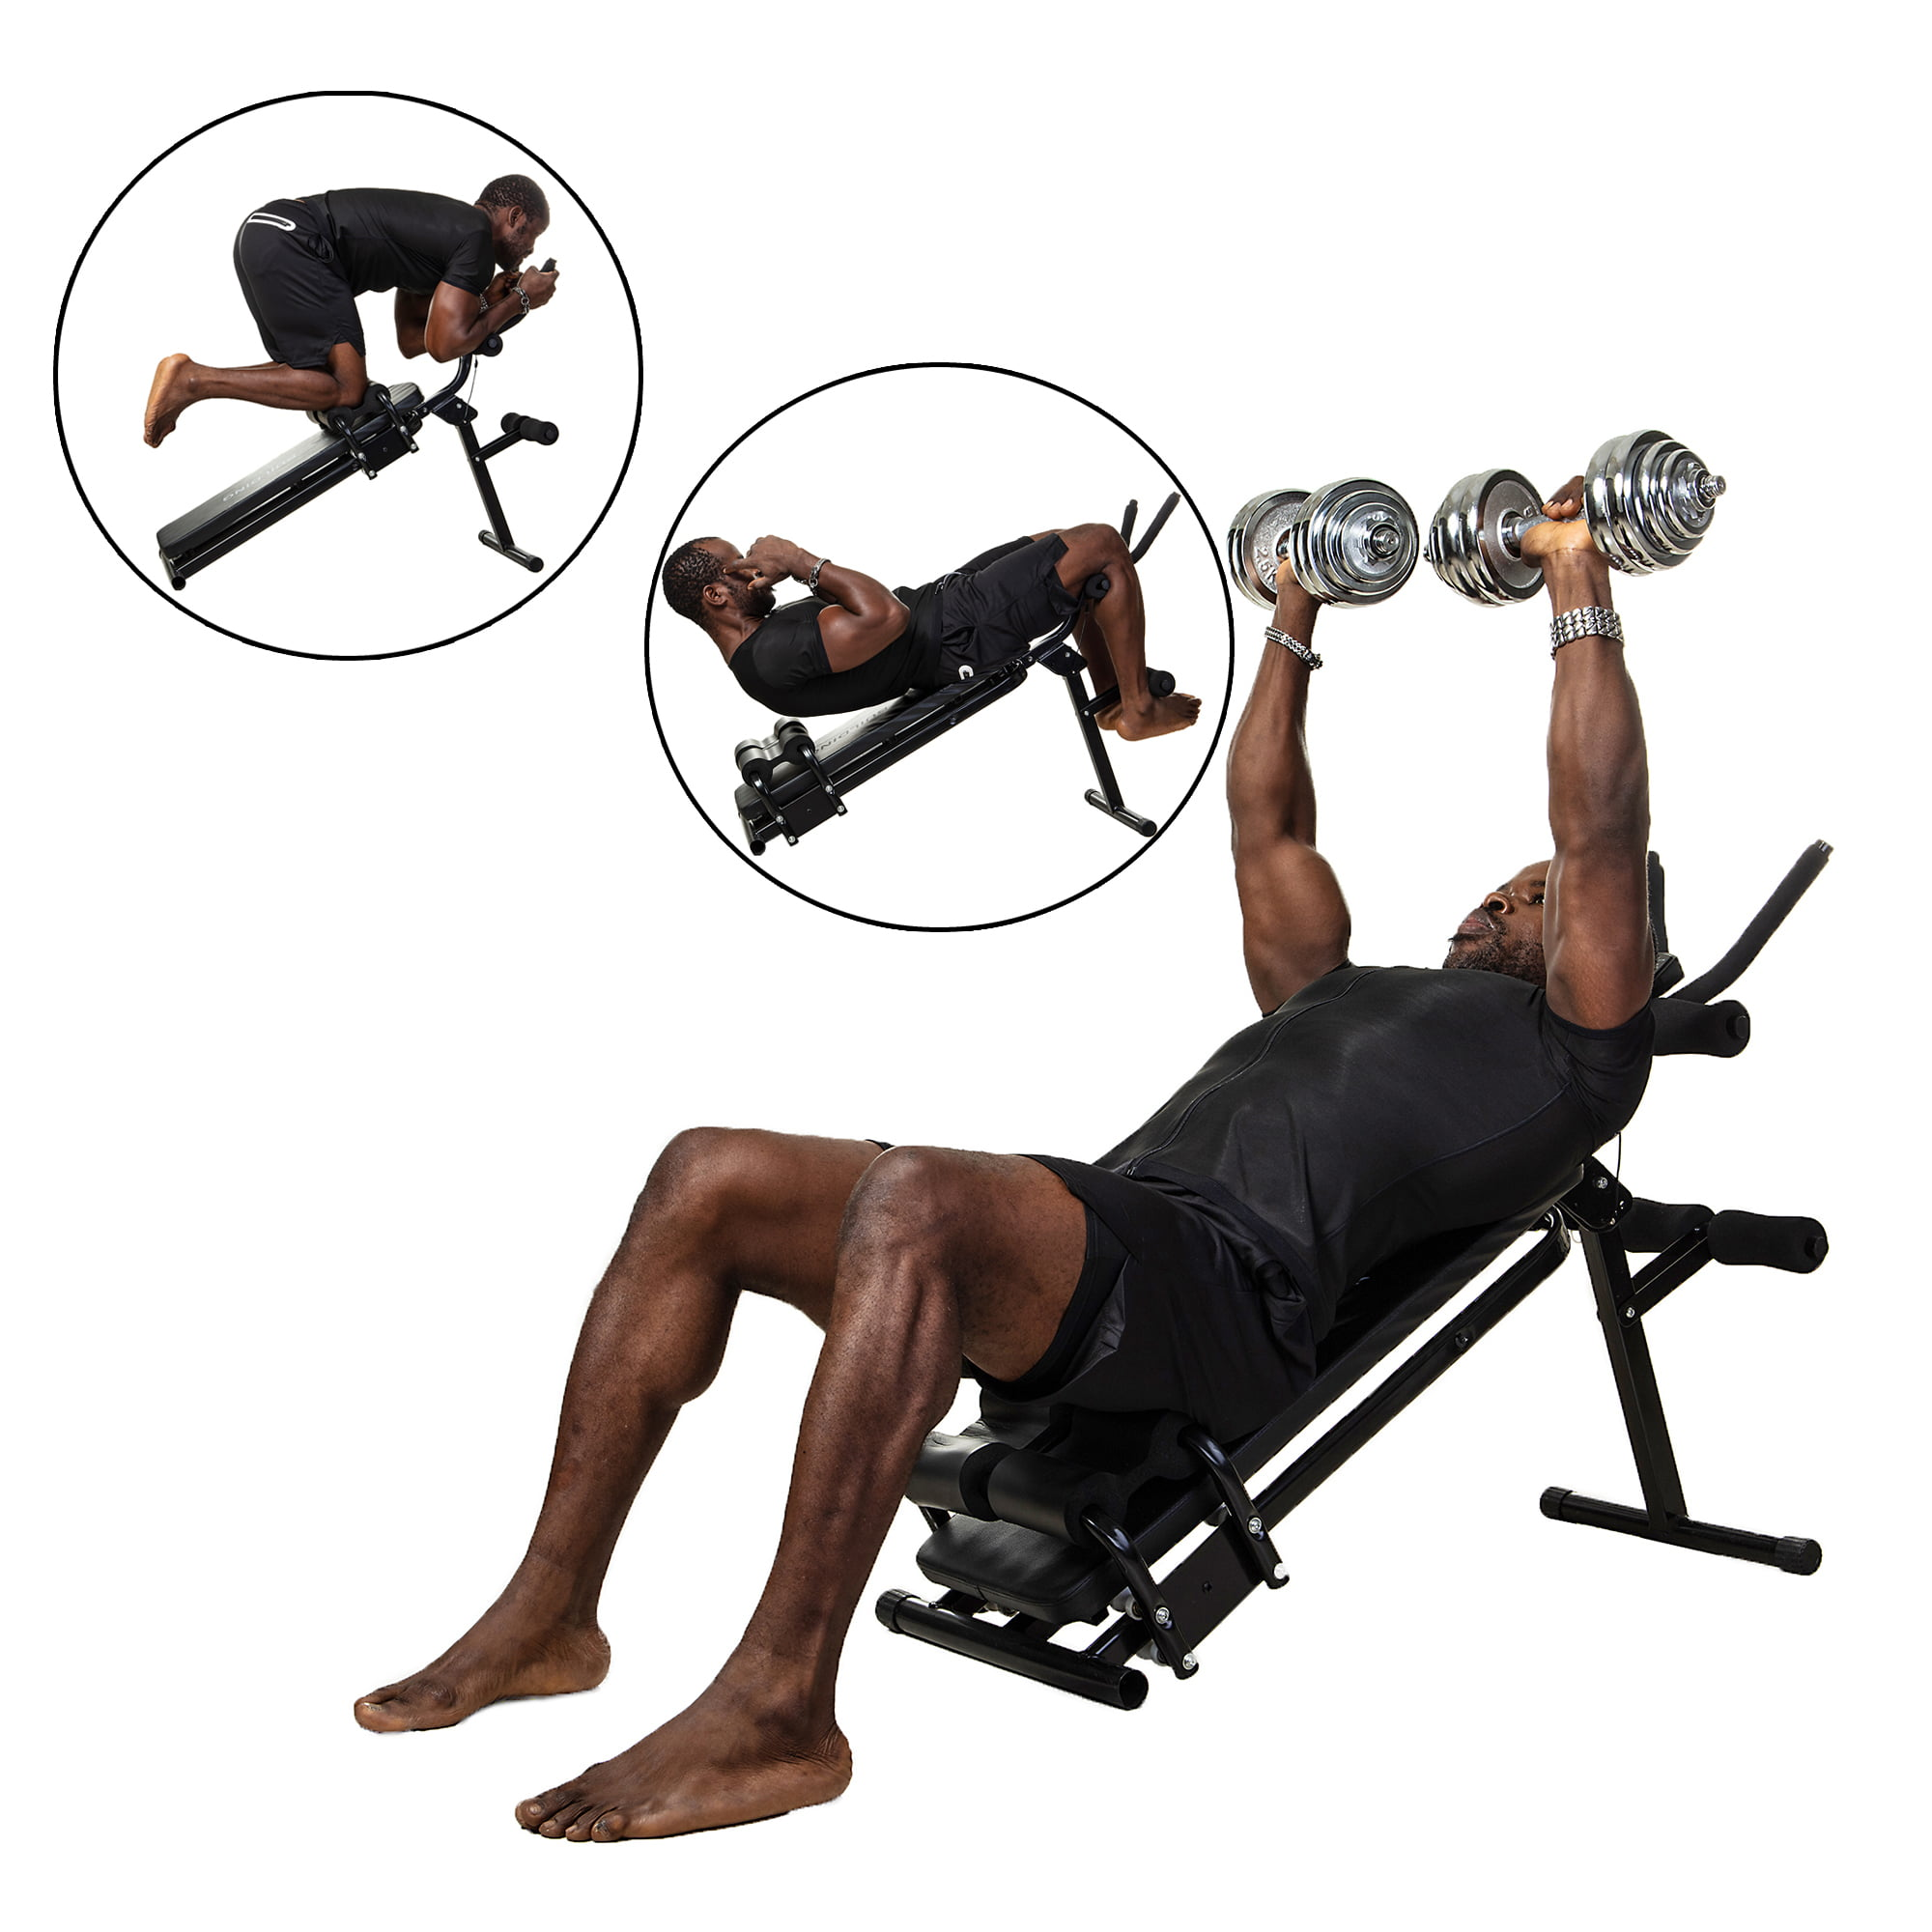 Details about  /WEIGHTLIFTING HEAVY SANDBAG STRENGTH TRAINING BODY FITNESS EQUIPMENT TALK